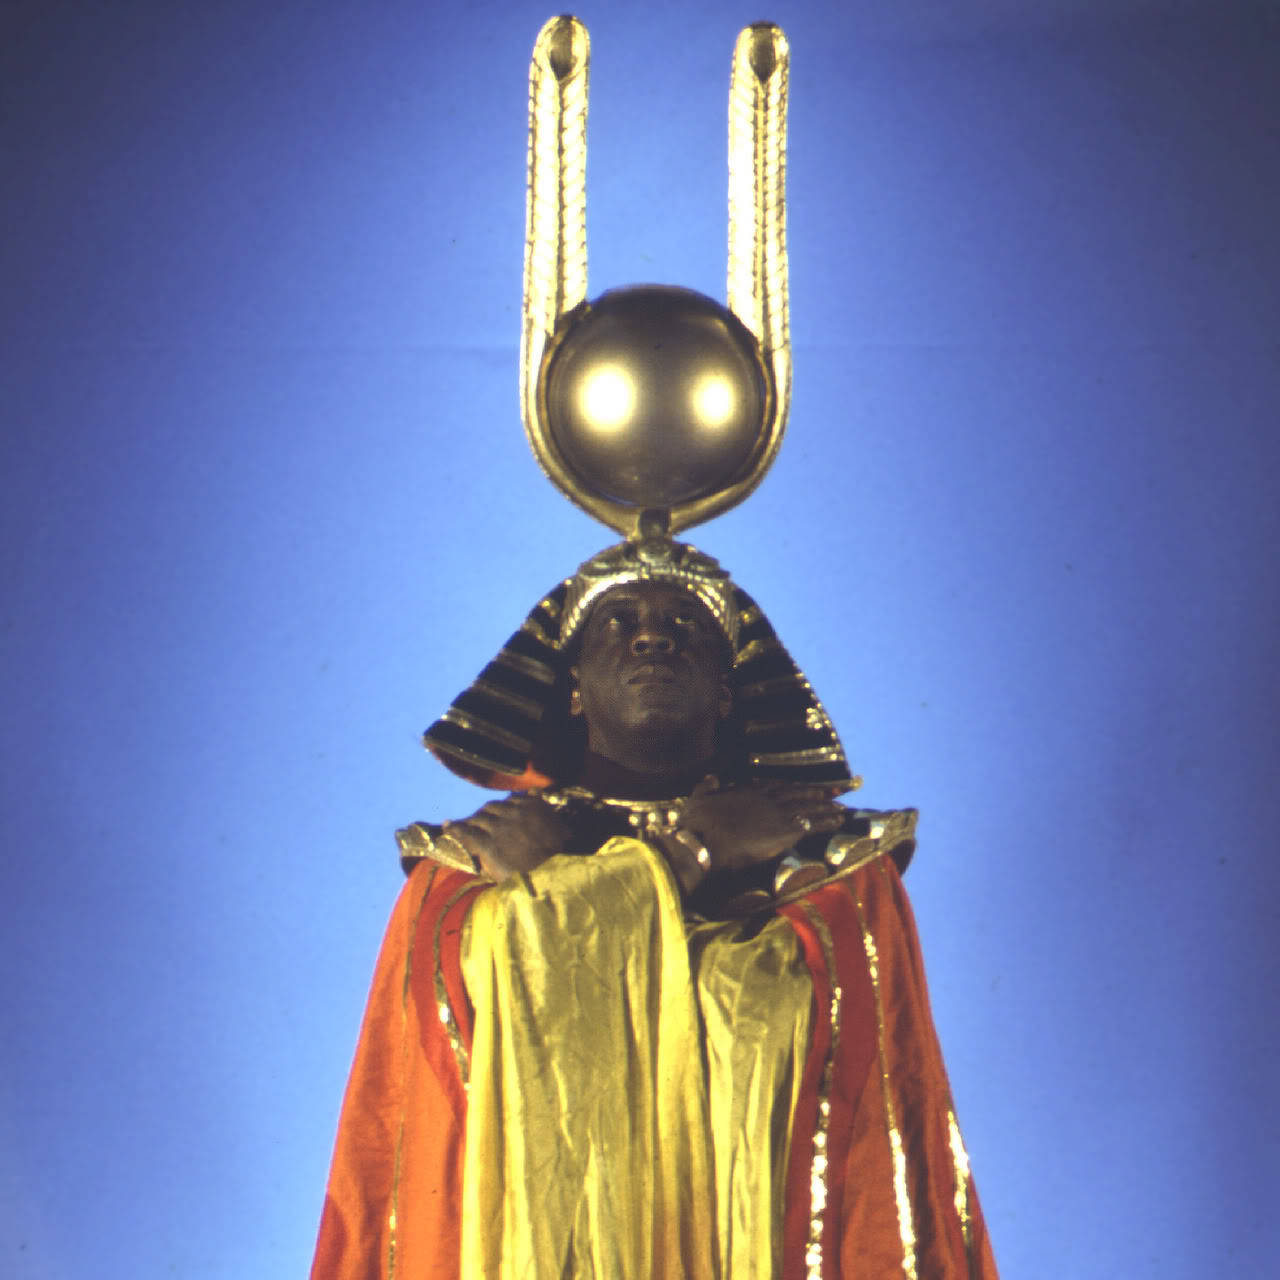 Have yourself a Sun Ra Sunday courtesy of UbuWeb and their tremendous collection of avant jazz by the master and his Arkestra.